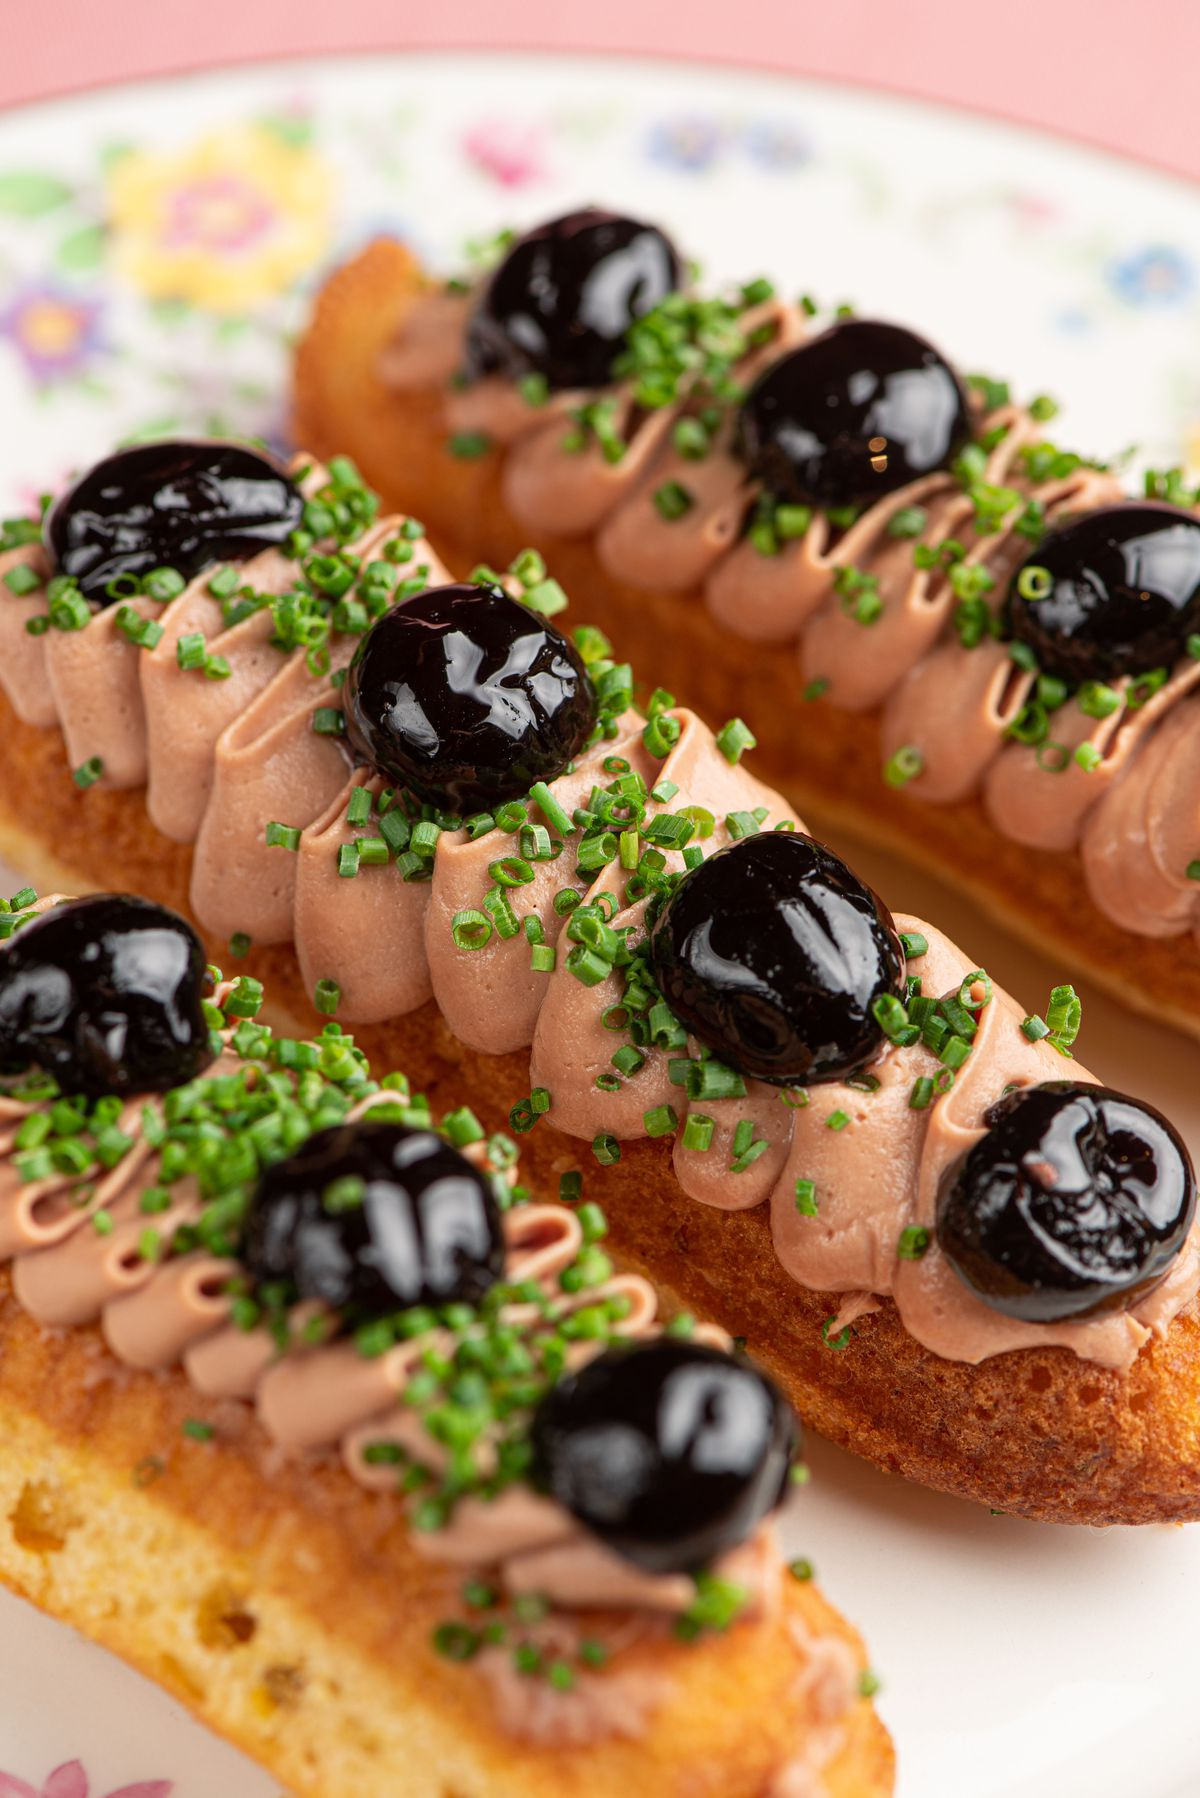 A long eclair-like piece of bread with a wide spread of chicken liver on top, spotted by cherries.